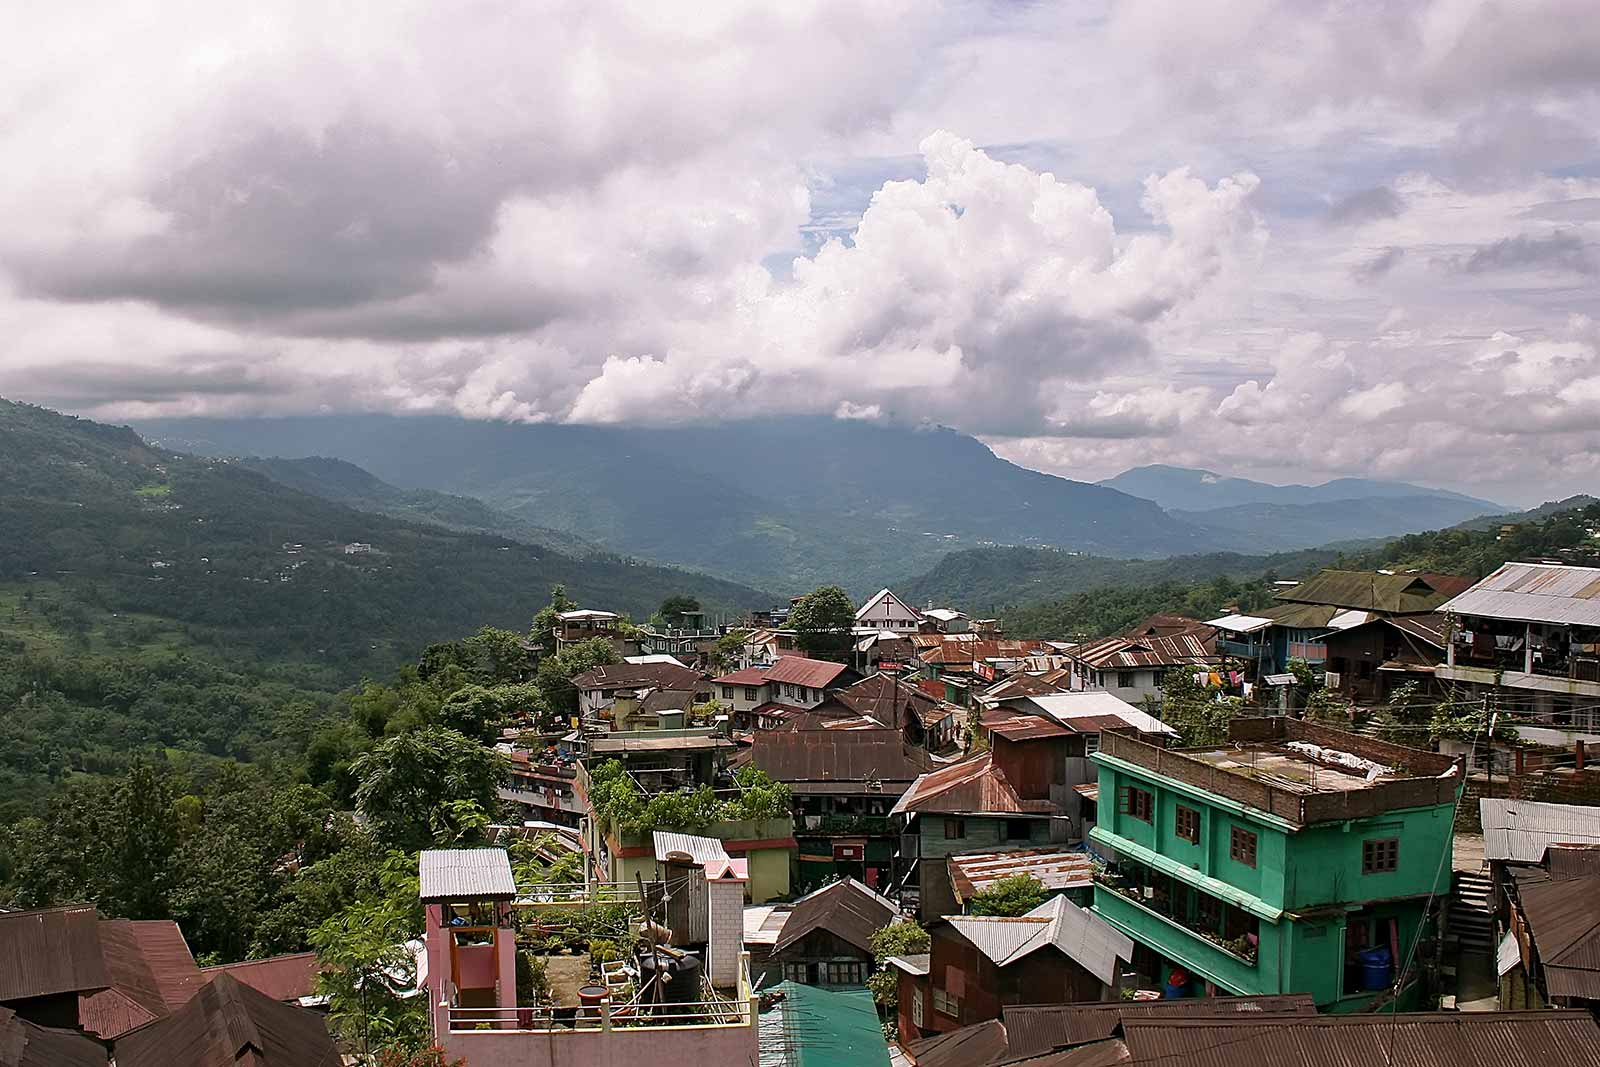 The view of Kohima in Nagaland.